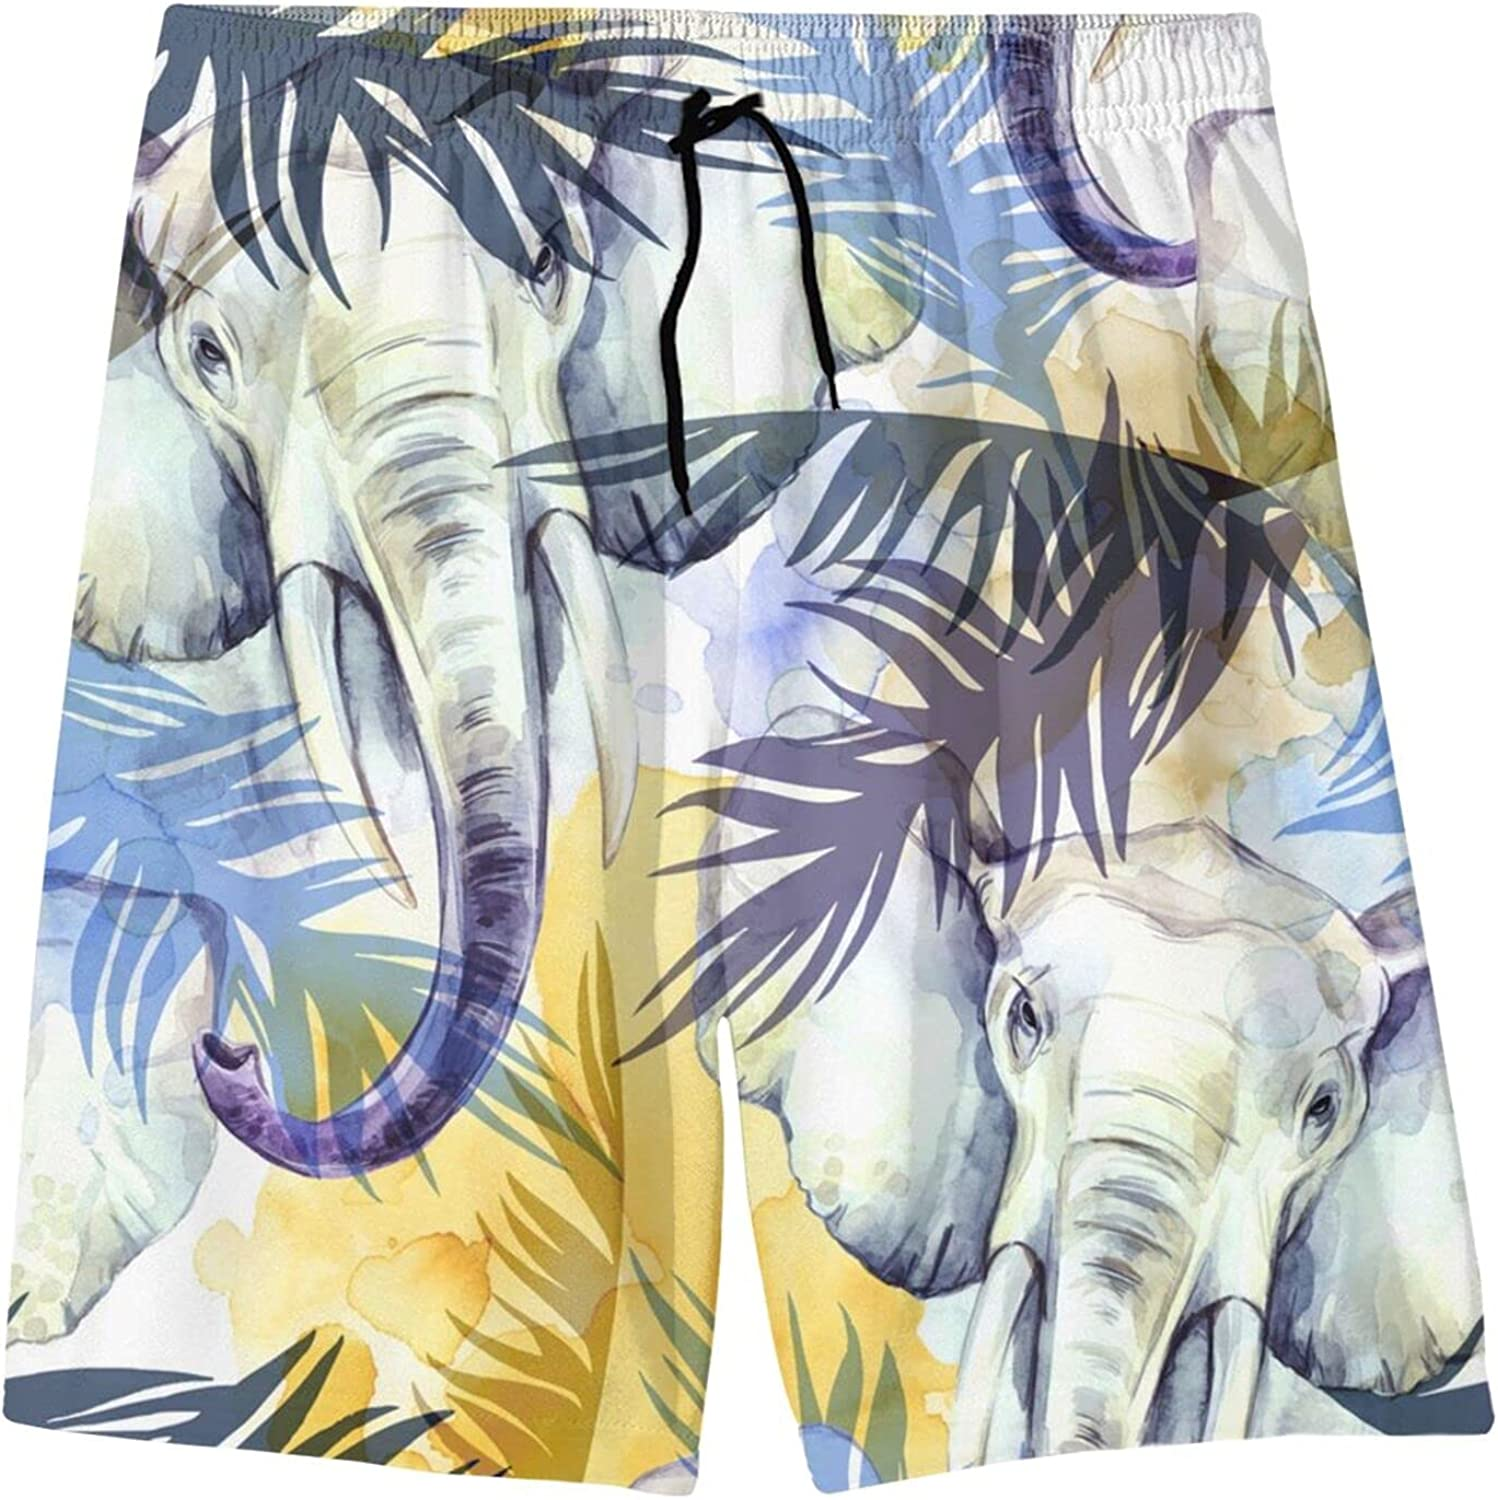 Fairy UMI Watercolor Elephant Boys Quick Dry Swim Trunks Youth Fashion Beach Surfing Board Shorts 7-20 Years